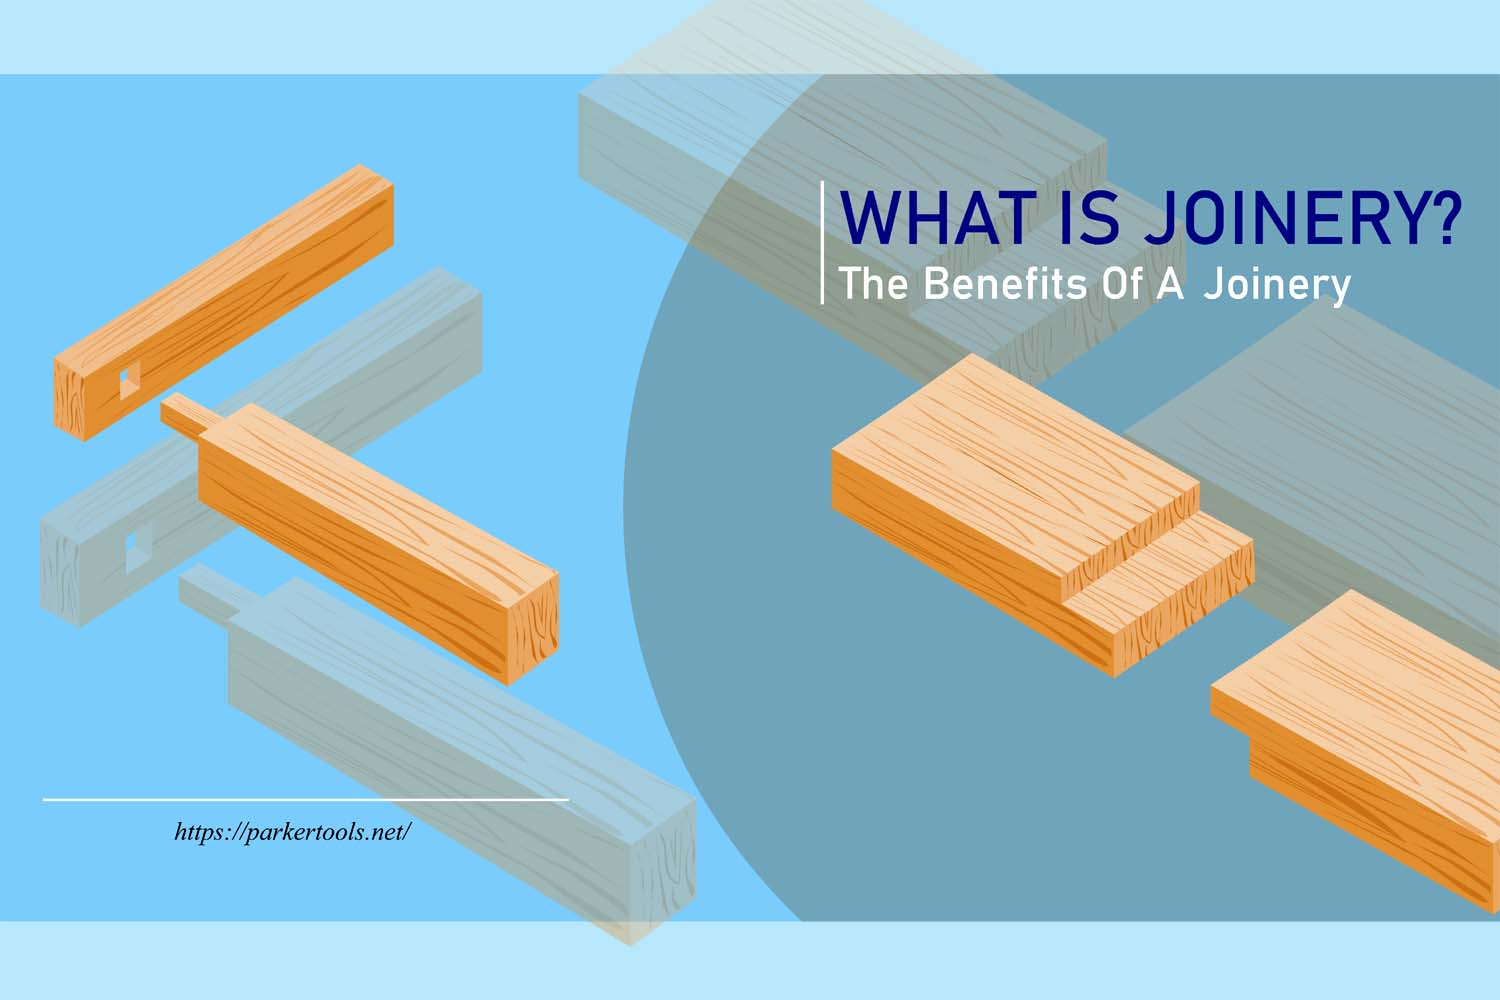 What is joinery